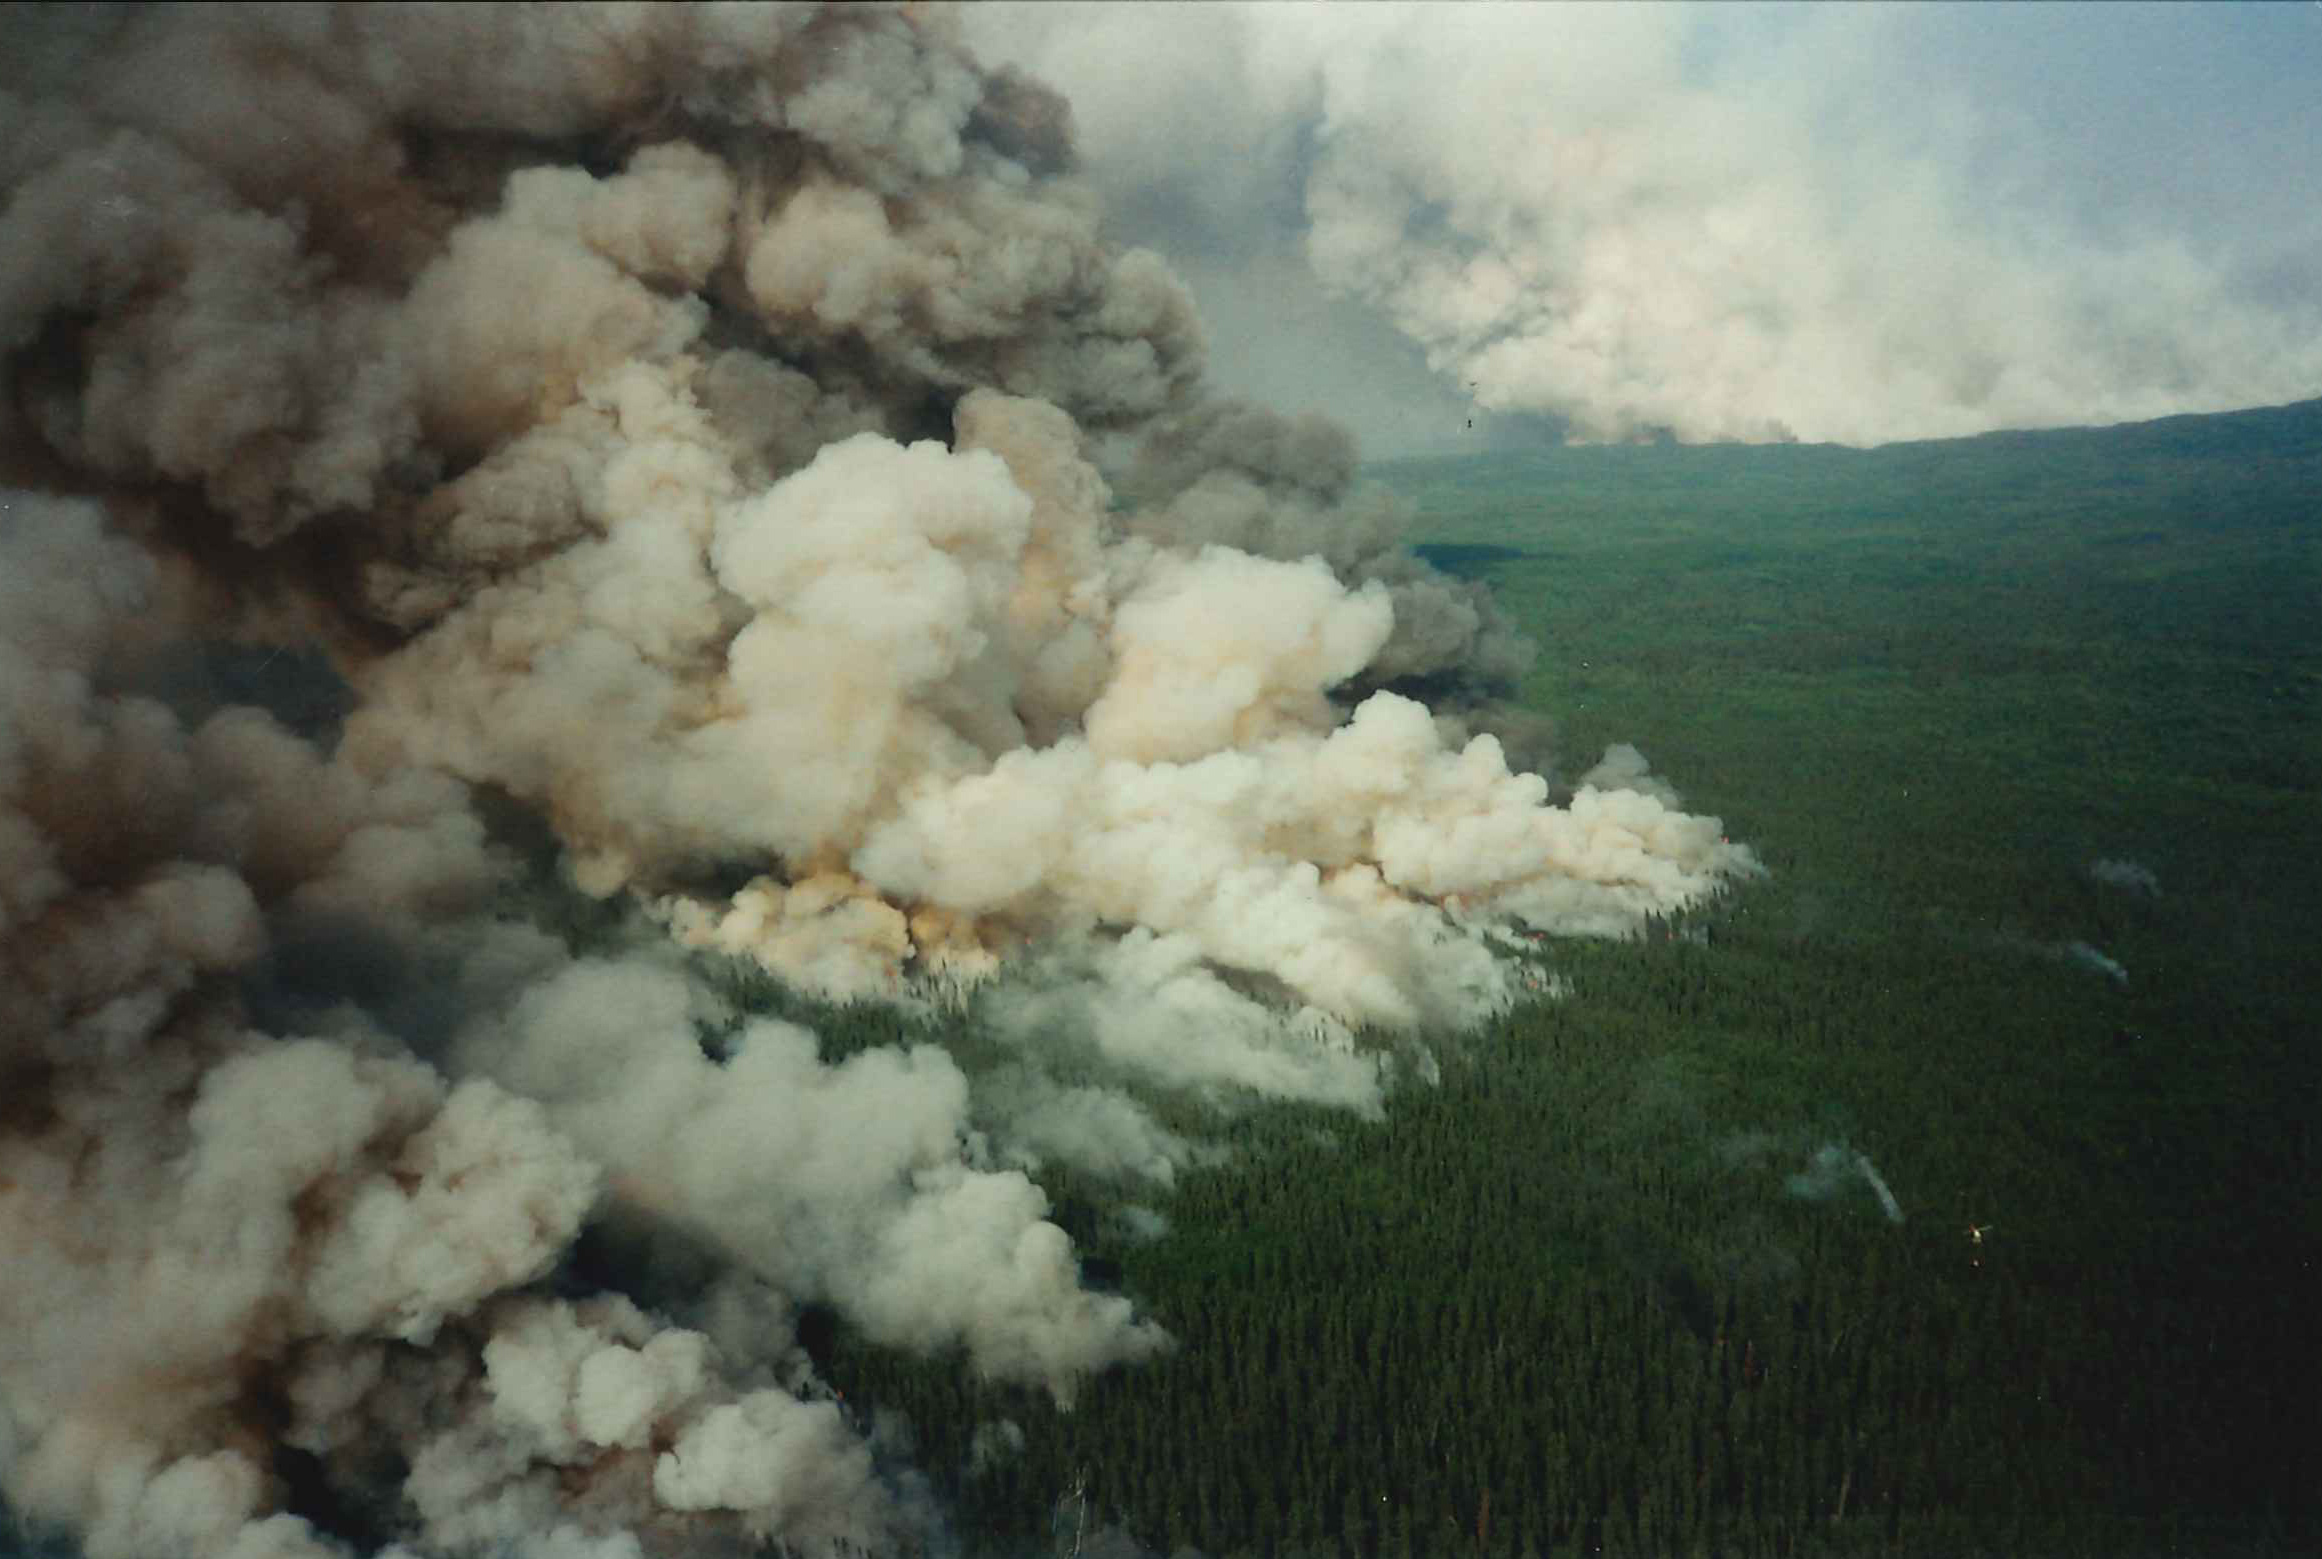 Aerial view of large forest fire front